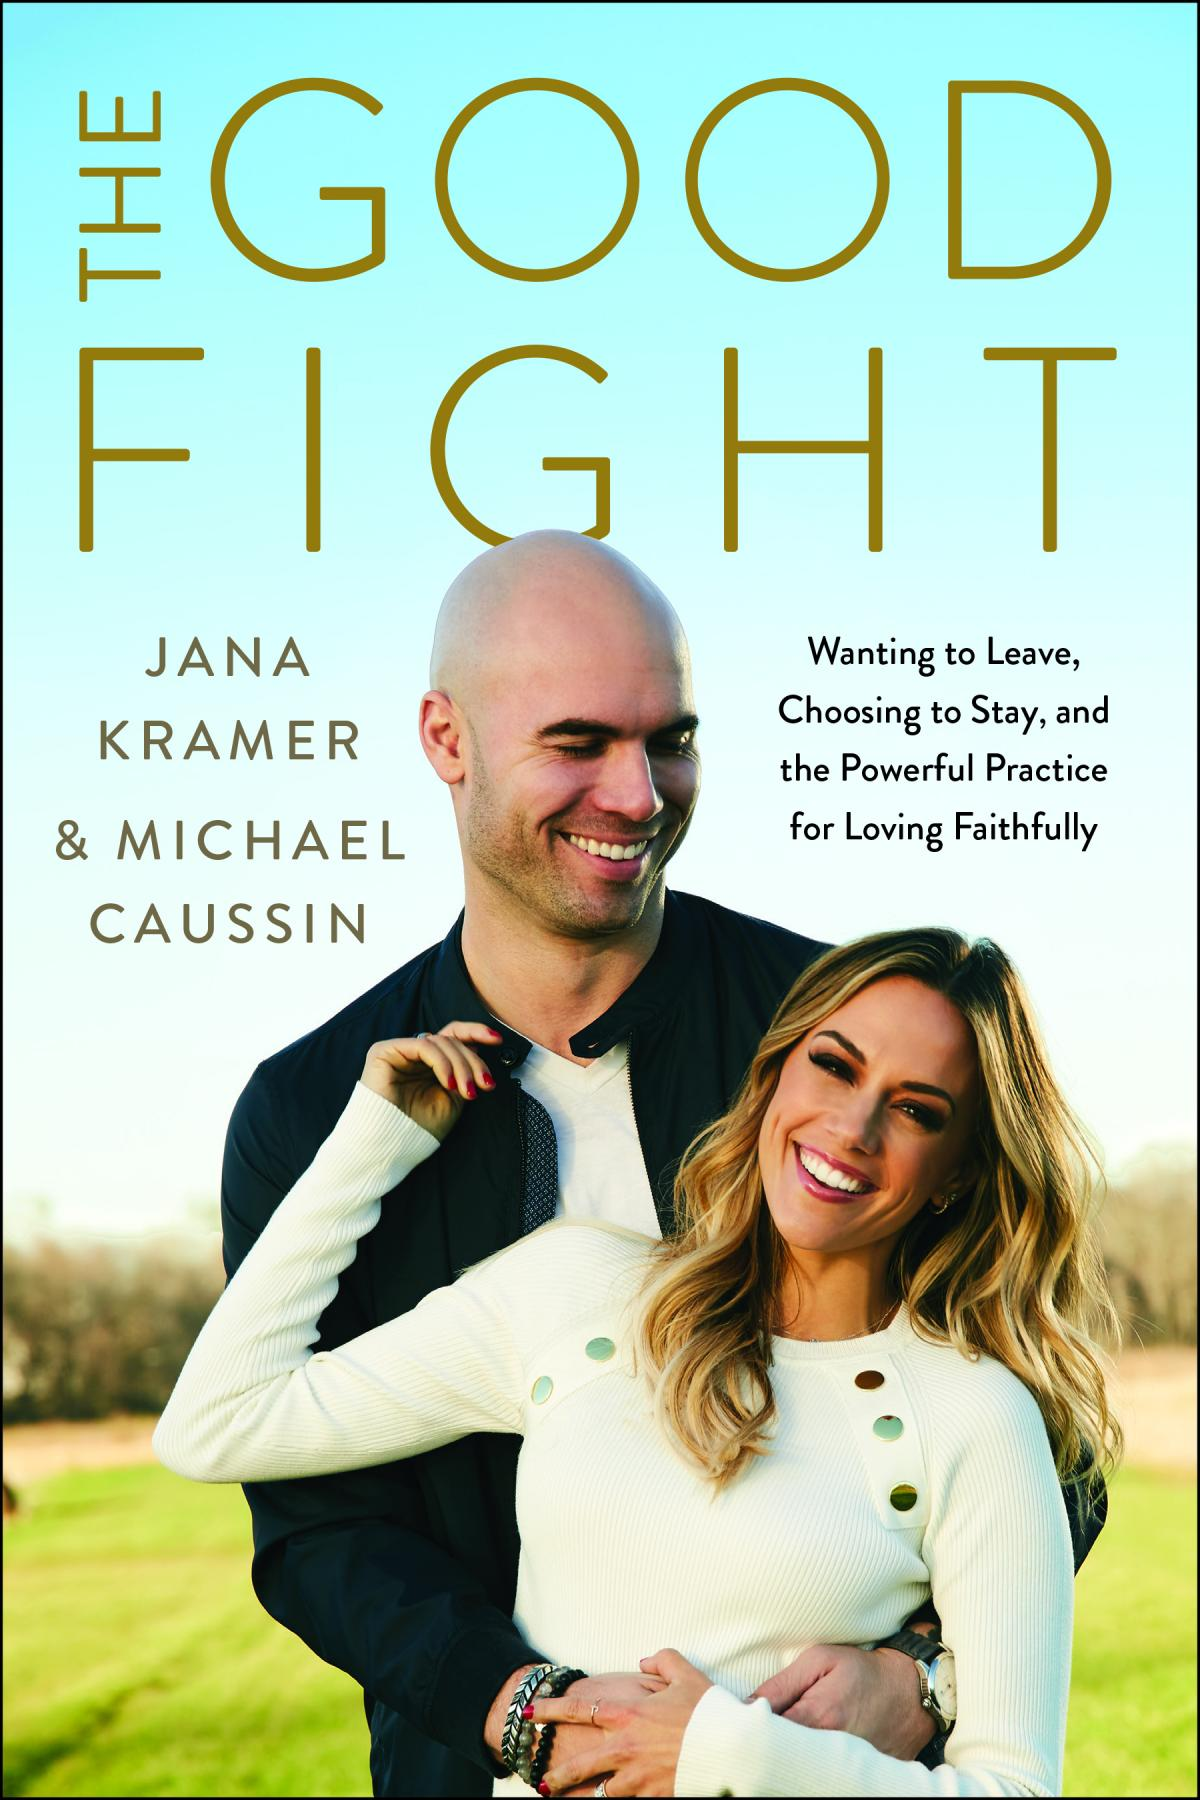 The good fight : Wanting to Leave, Choosing to Stay, and the Powerful Practice for Loving Faithfully by Kramer, Jana